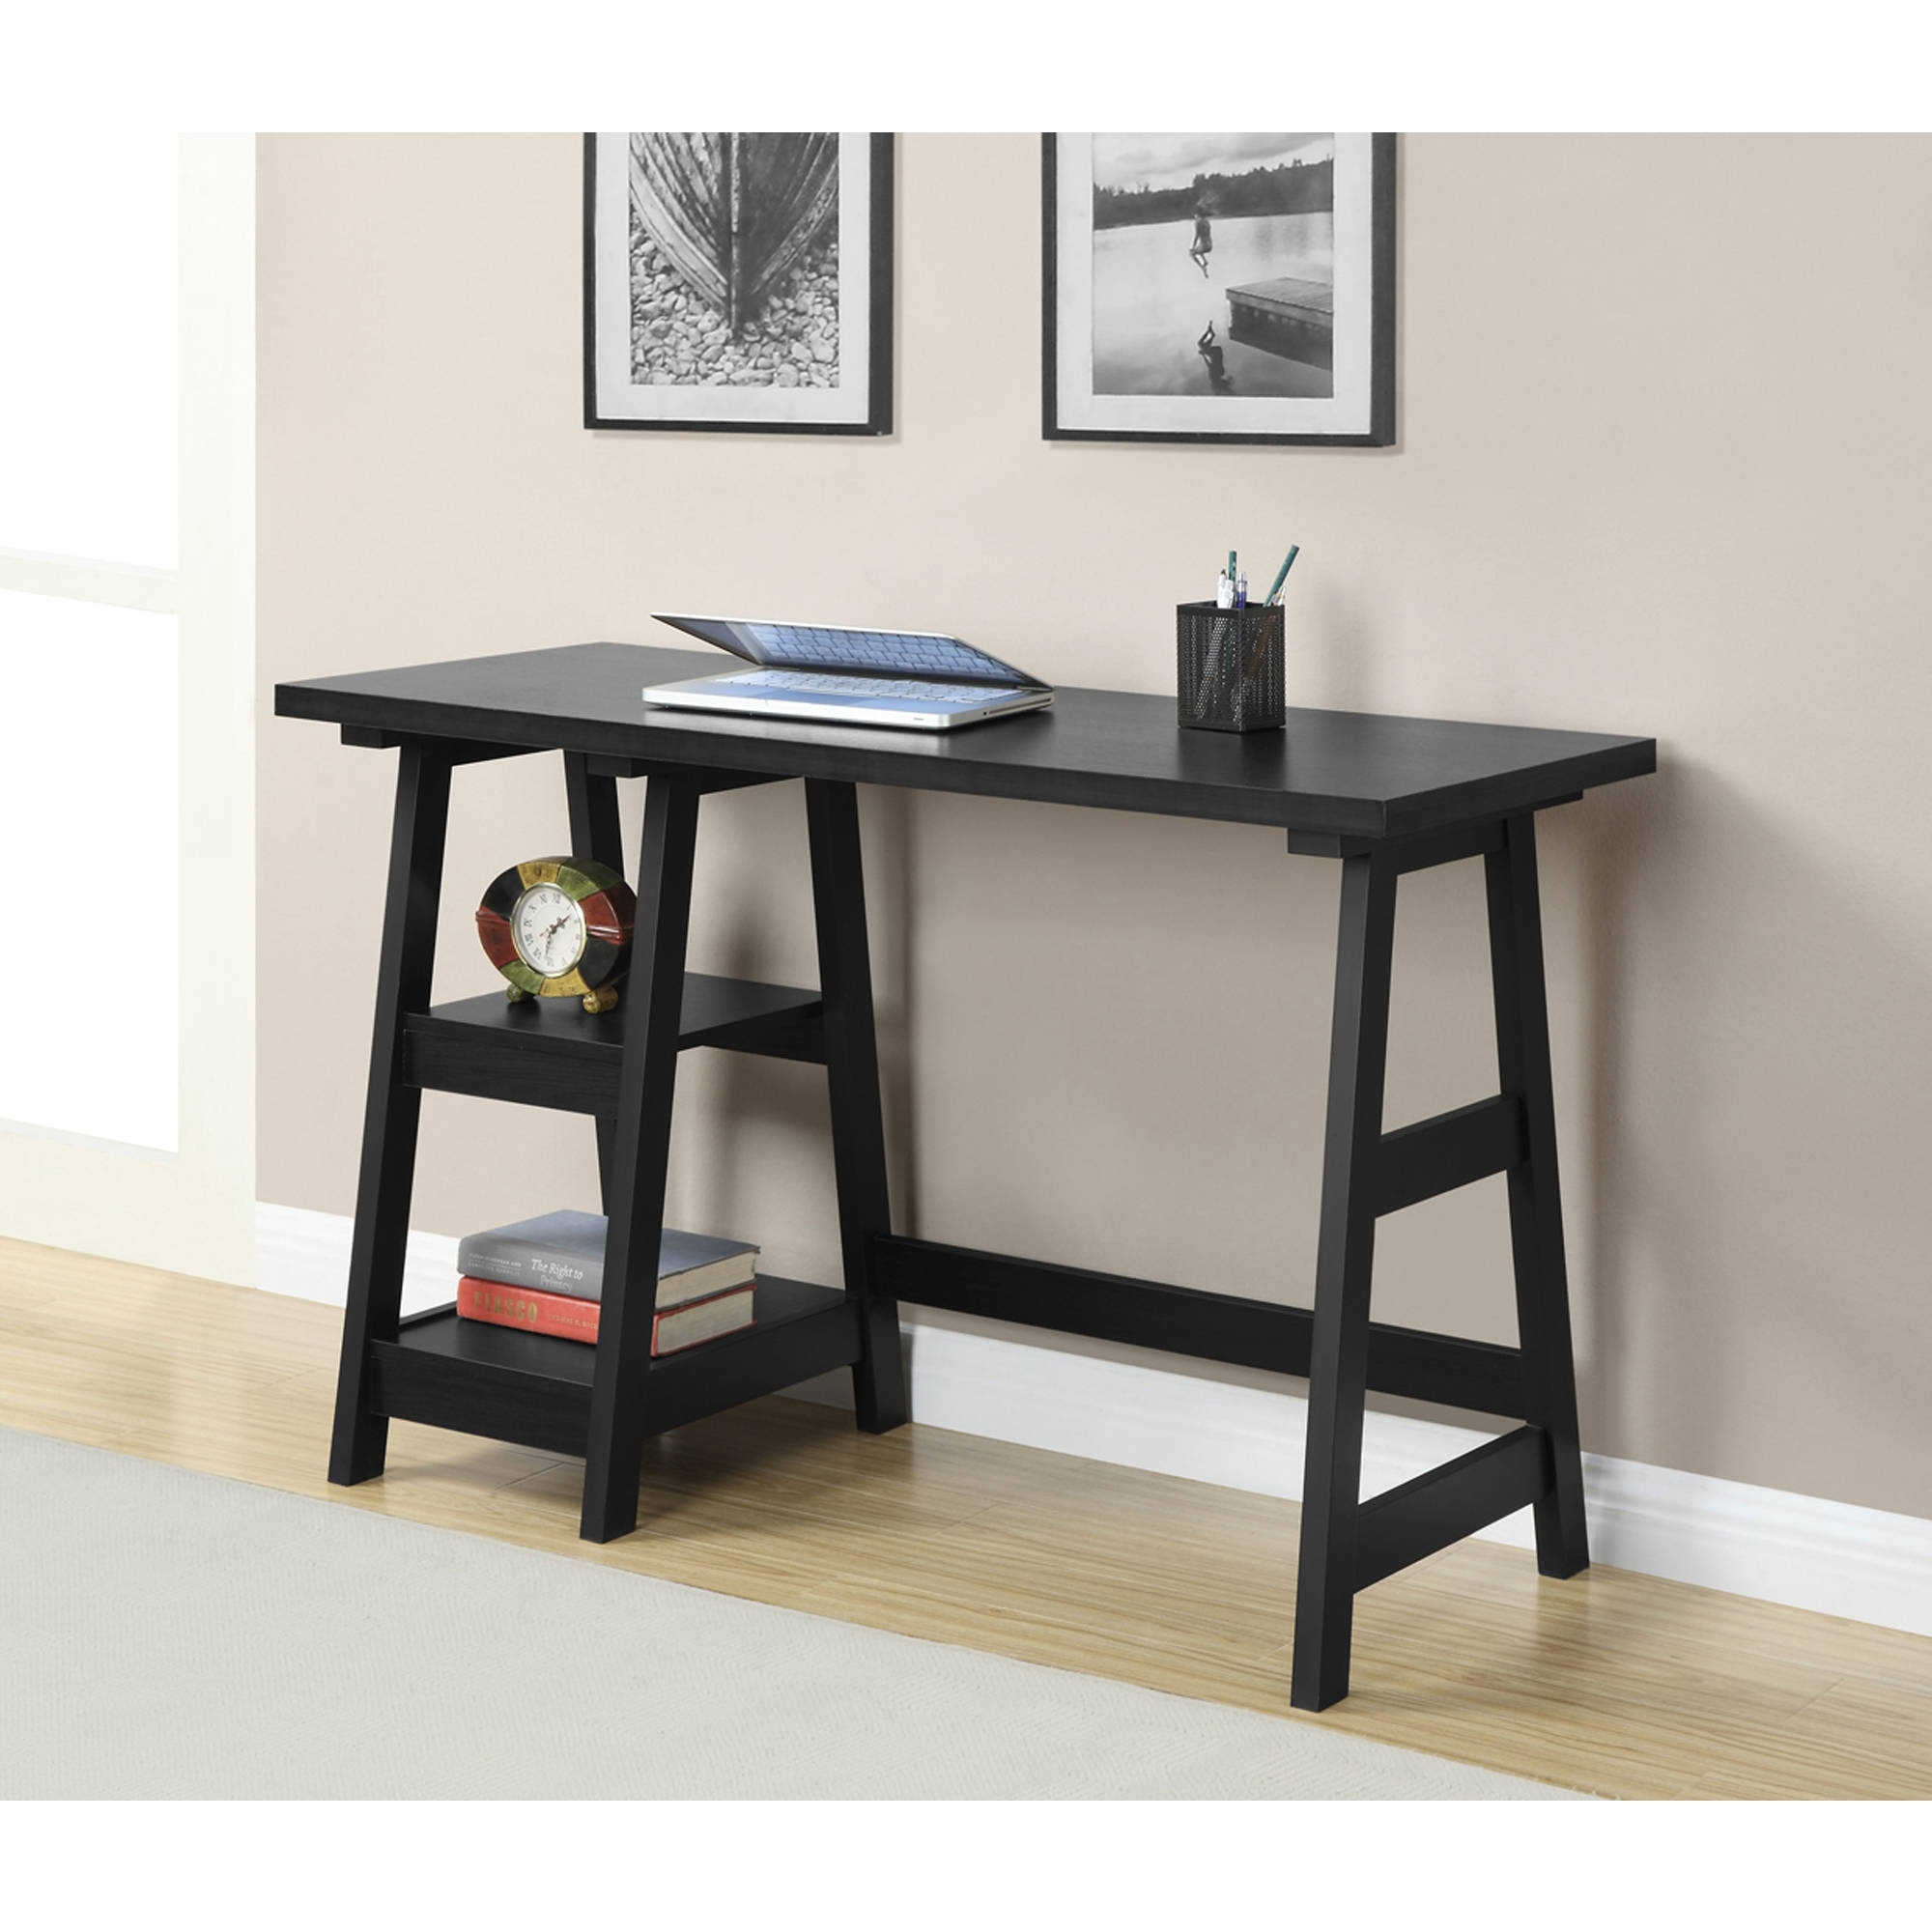 75 Most Wonderful Desk And Chair Black Walmart Chairs Computer Pertaining To Current Computer Desks At Walmart (View 7 of 20)